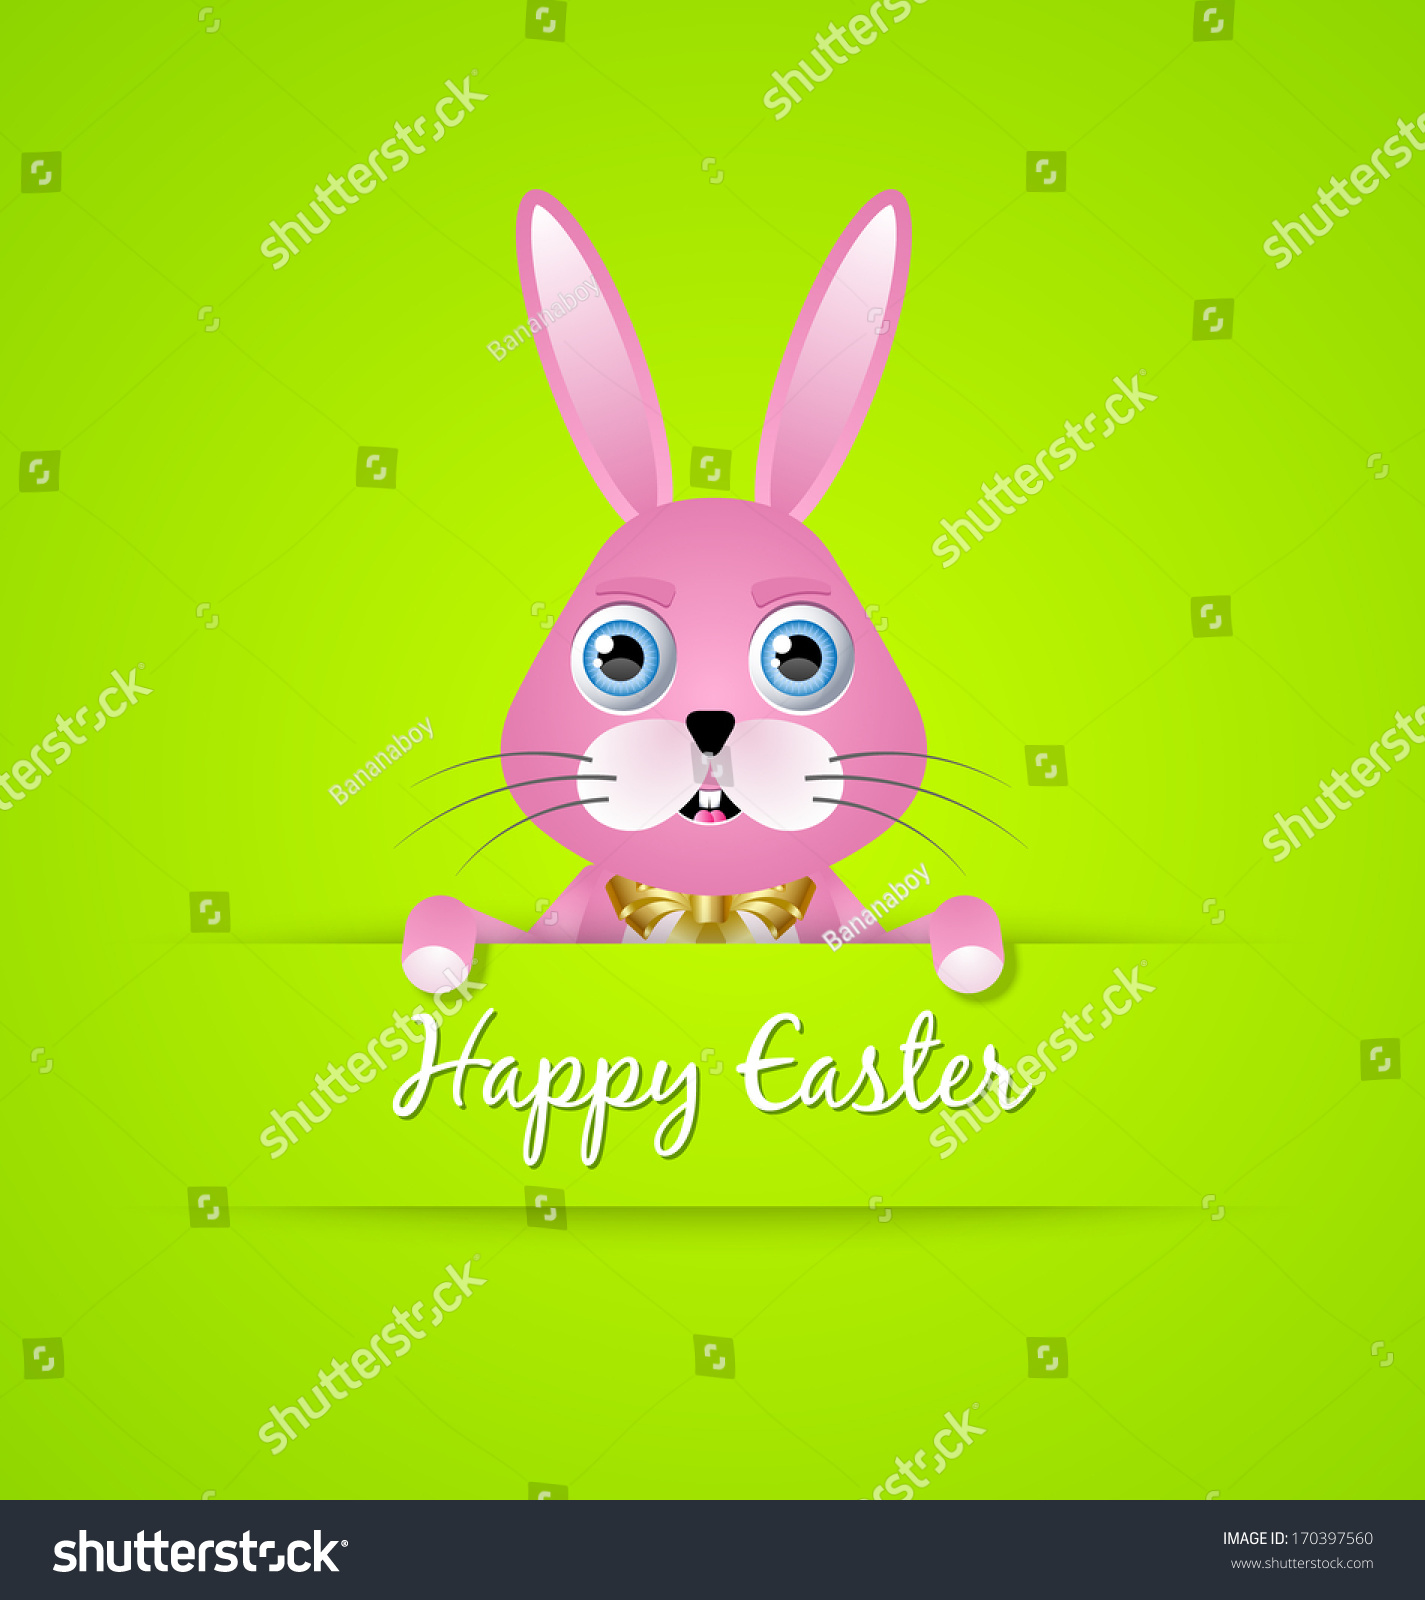 Doodle hand drawn Easter vector illustration with cute rabbit in